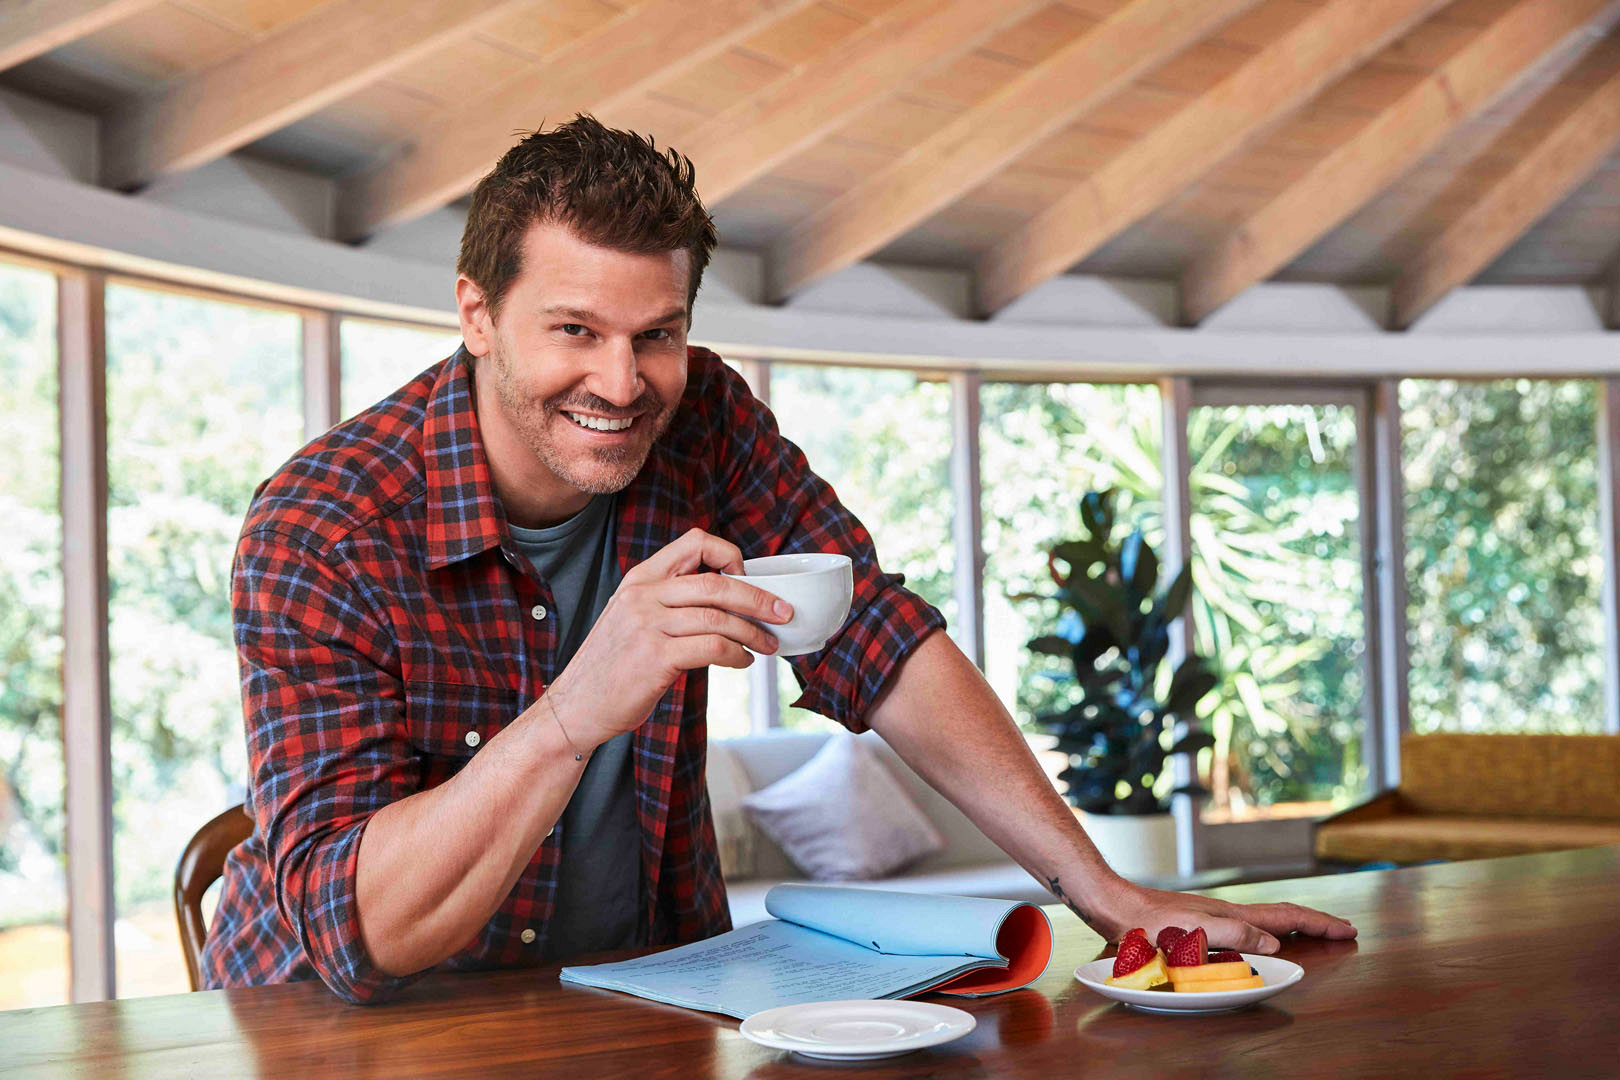 David Boreanaz is definitely our cup of tea